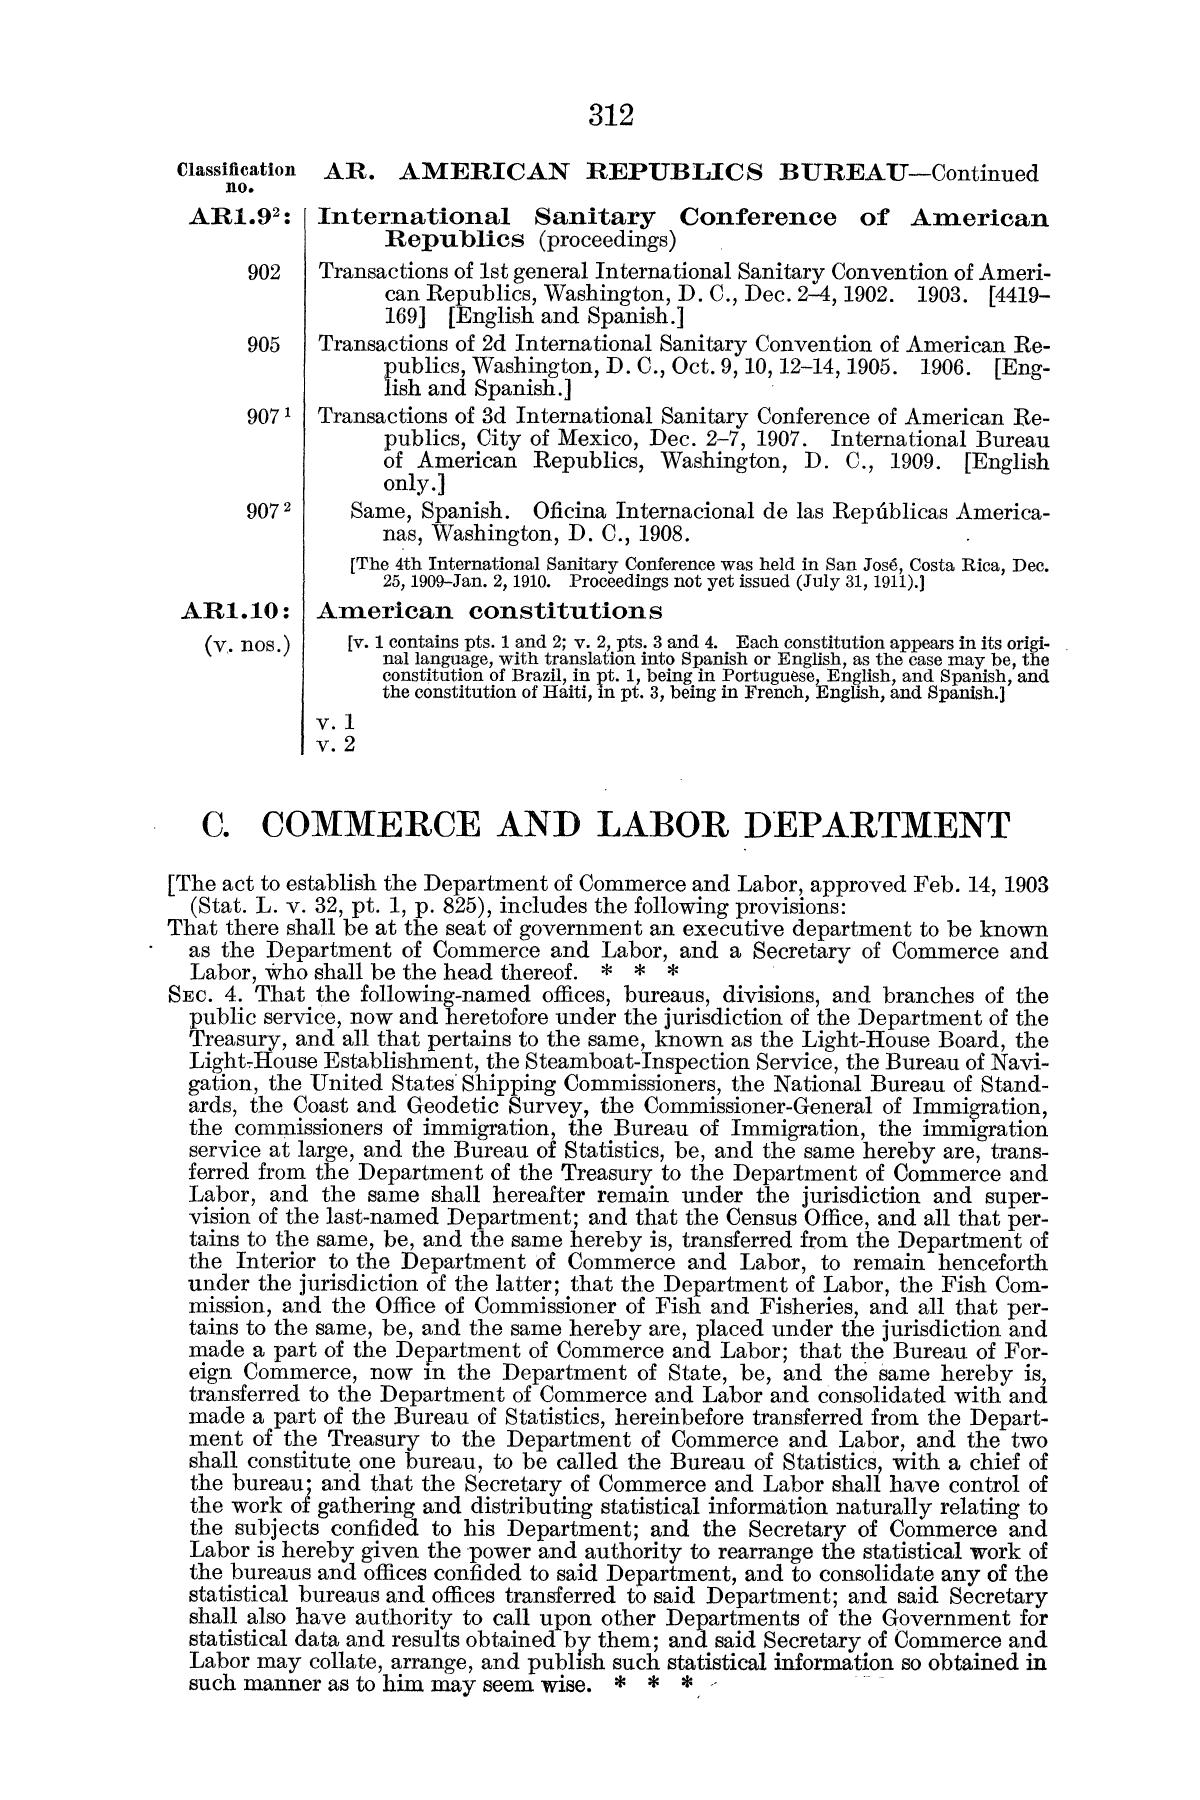 Checklist of United States Public Documents, 1789-1909, Third Edition Revised and Enlarged, Volume 1, Lists of Congressional and Departmental Publications                                                                                                      312